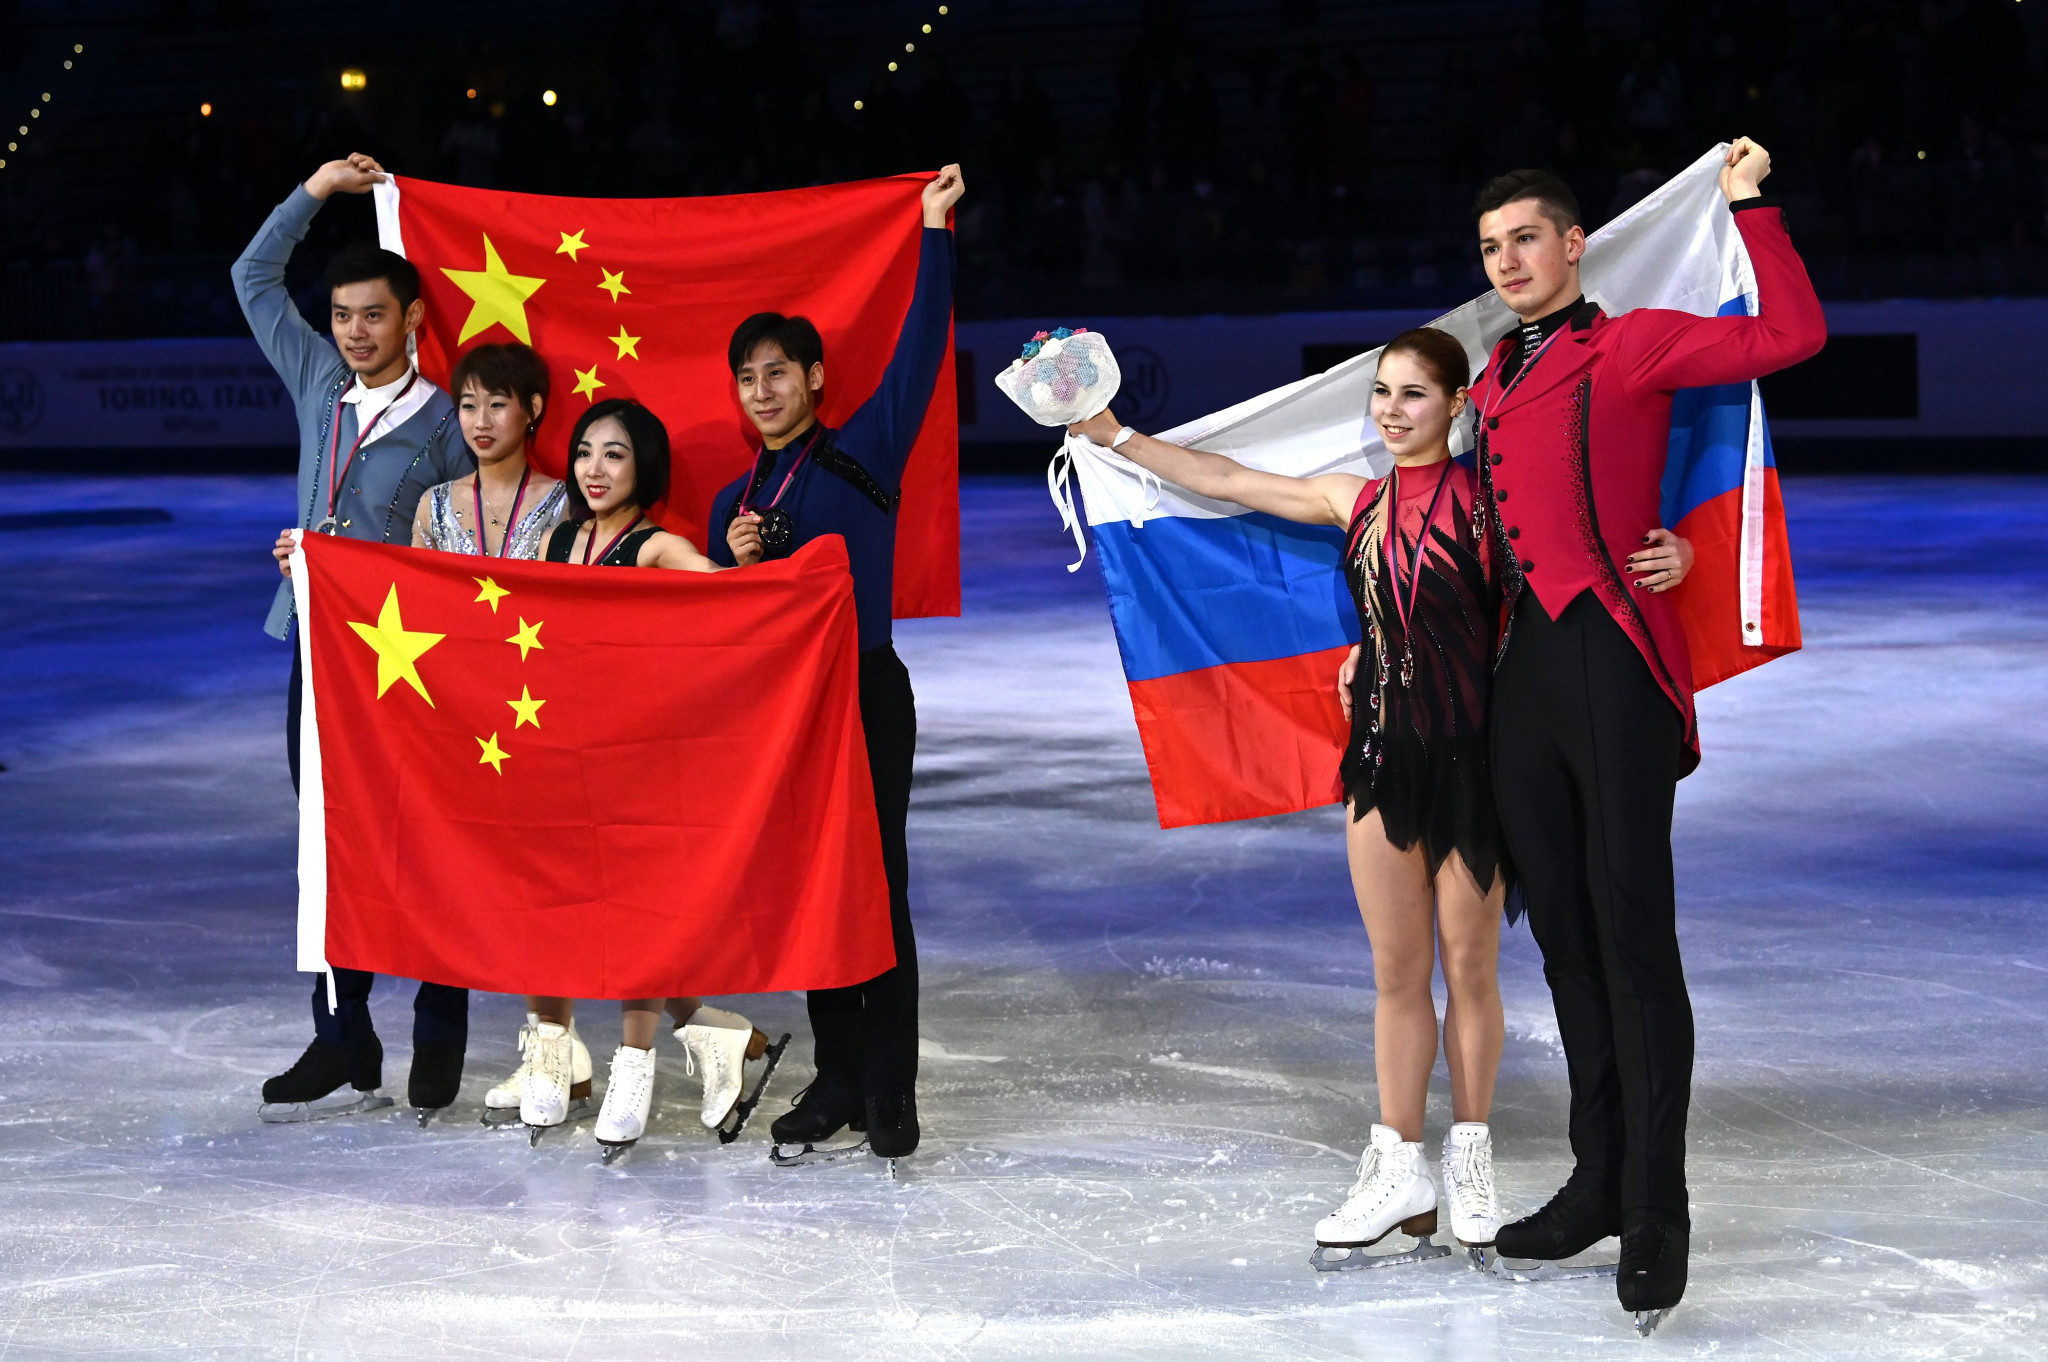 Russia and China to cooperate in sports development in 2022 and 2023